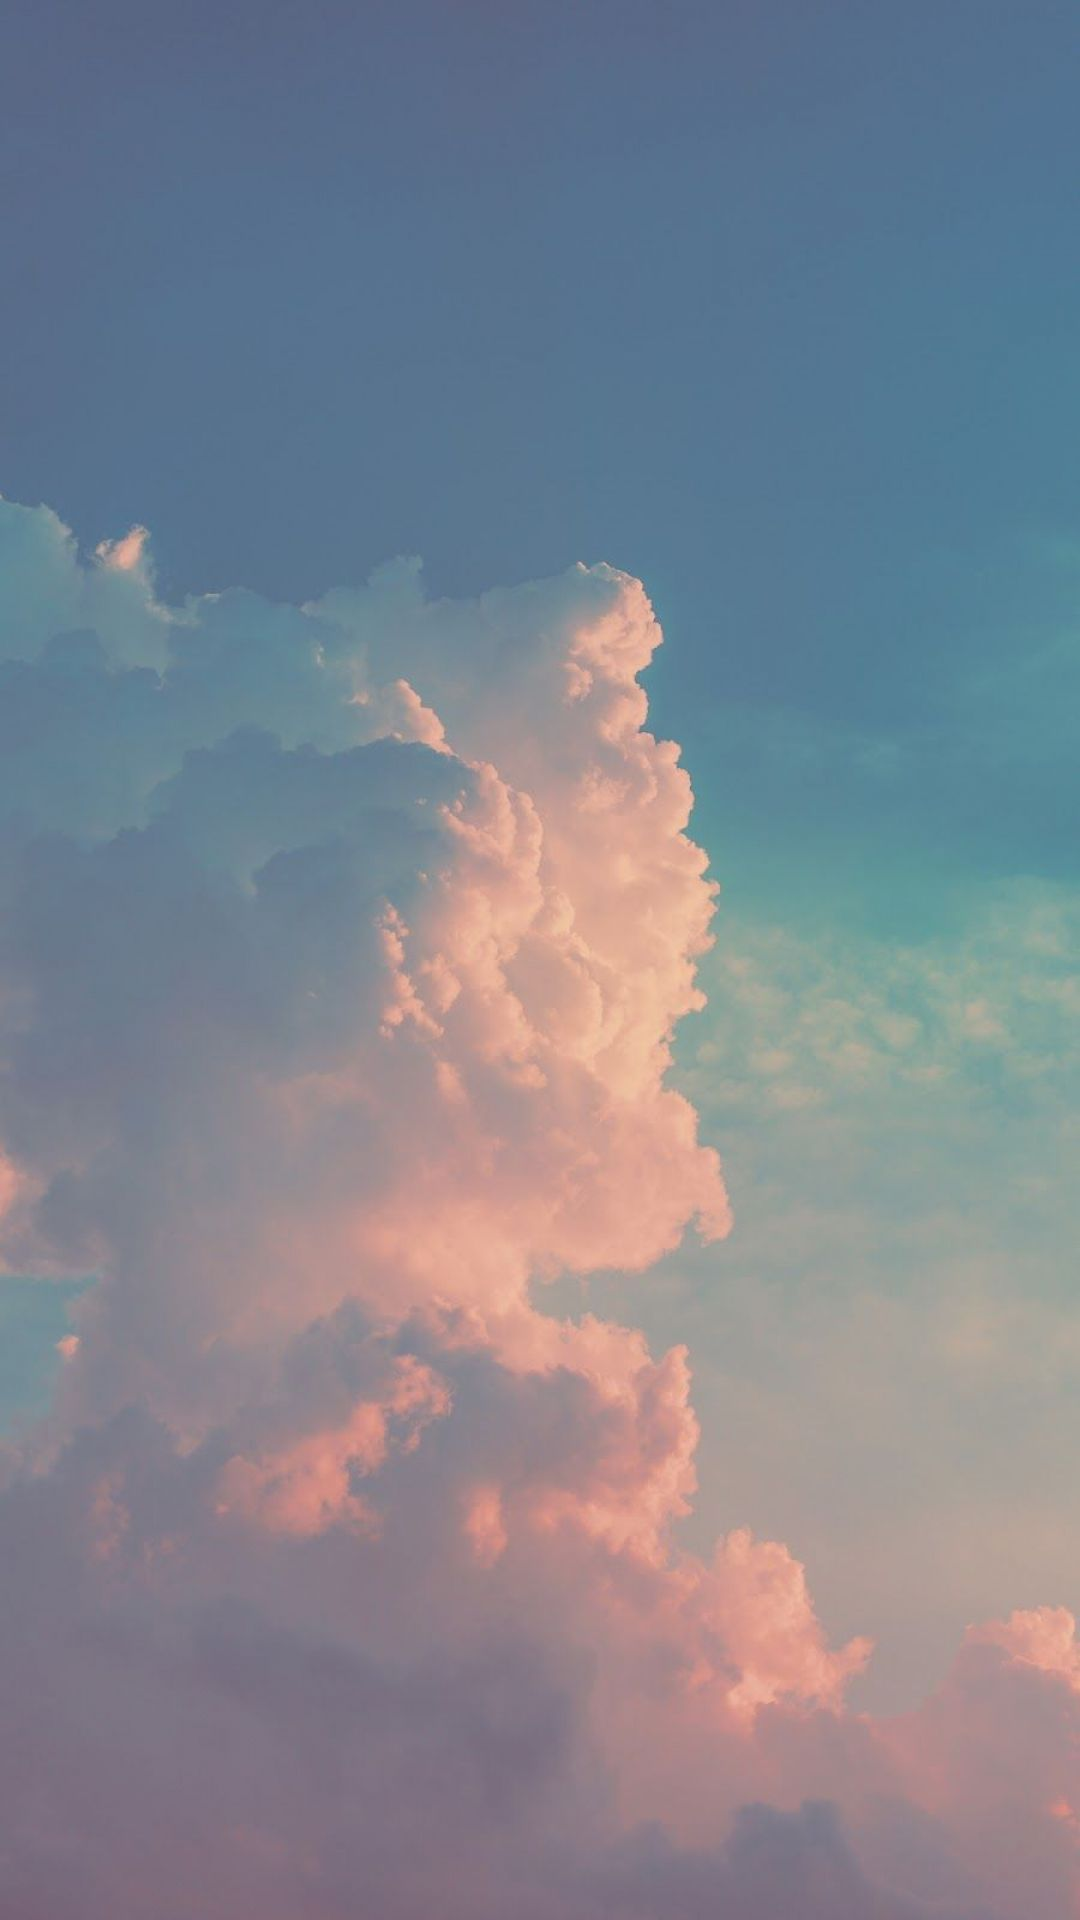 Clouds Android Iphone Desktop Hd Backgrounds Wallpapers 1080p 4k 126302 Hdwallpapers Androidwallpapers Ipho Sky Aesthetic Cloud Wallpaper Clouds